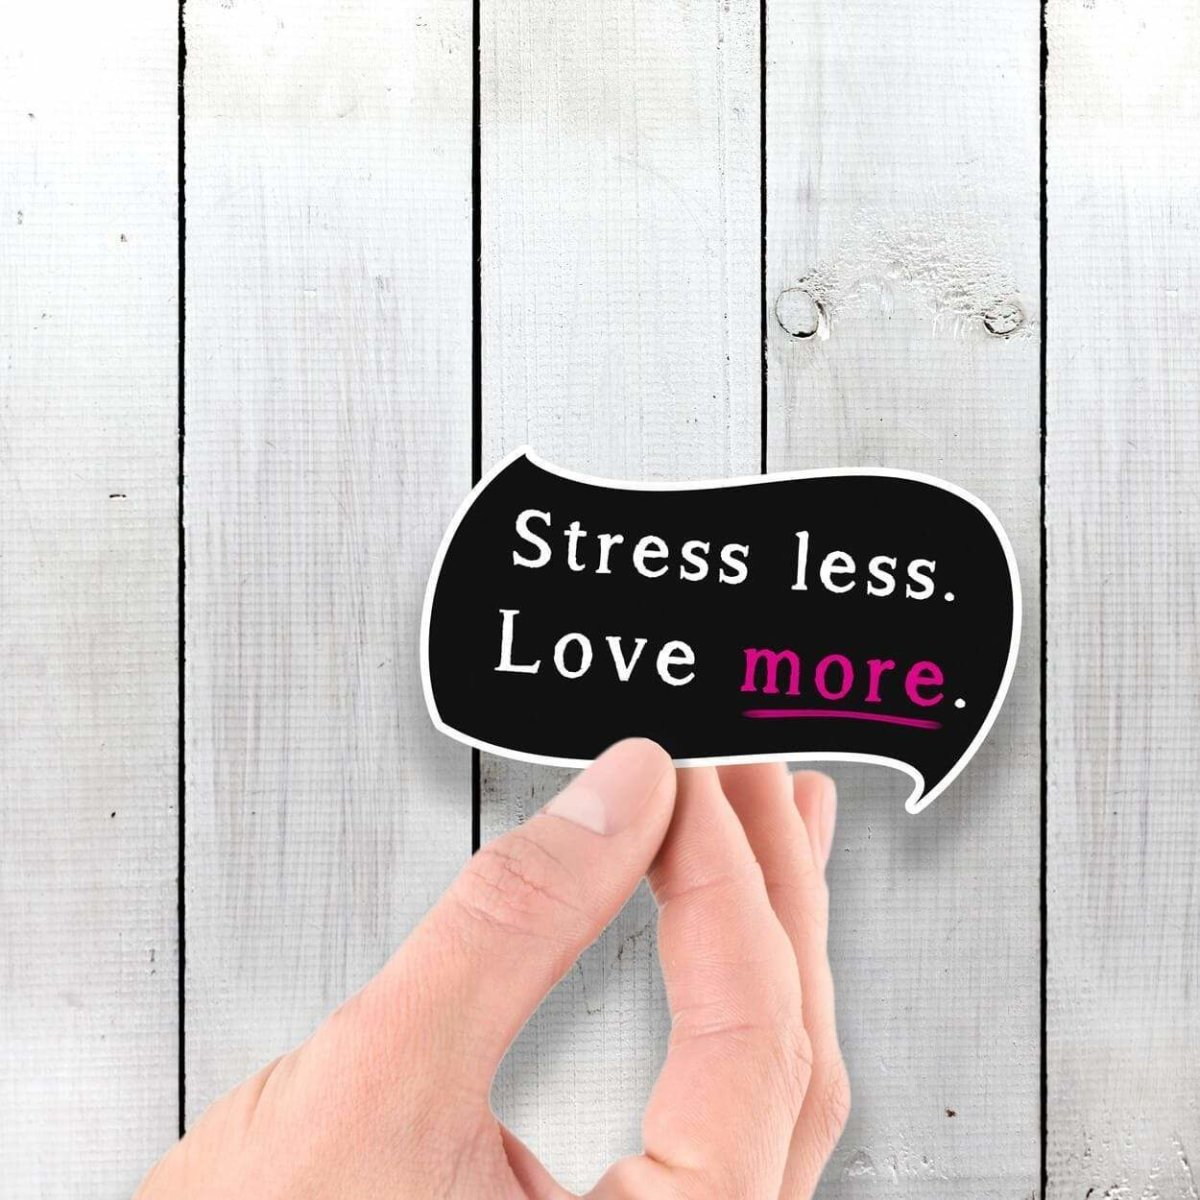 Stress Less - Love More - Vinyl Sticker - Dan Pearce Sticker Shop